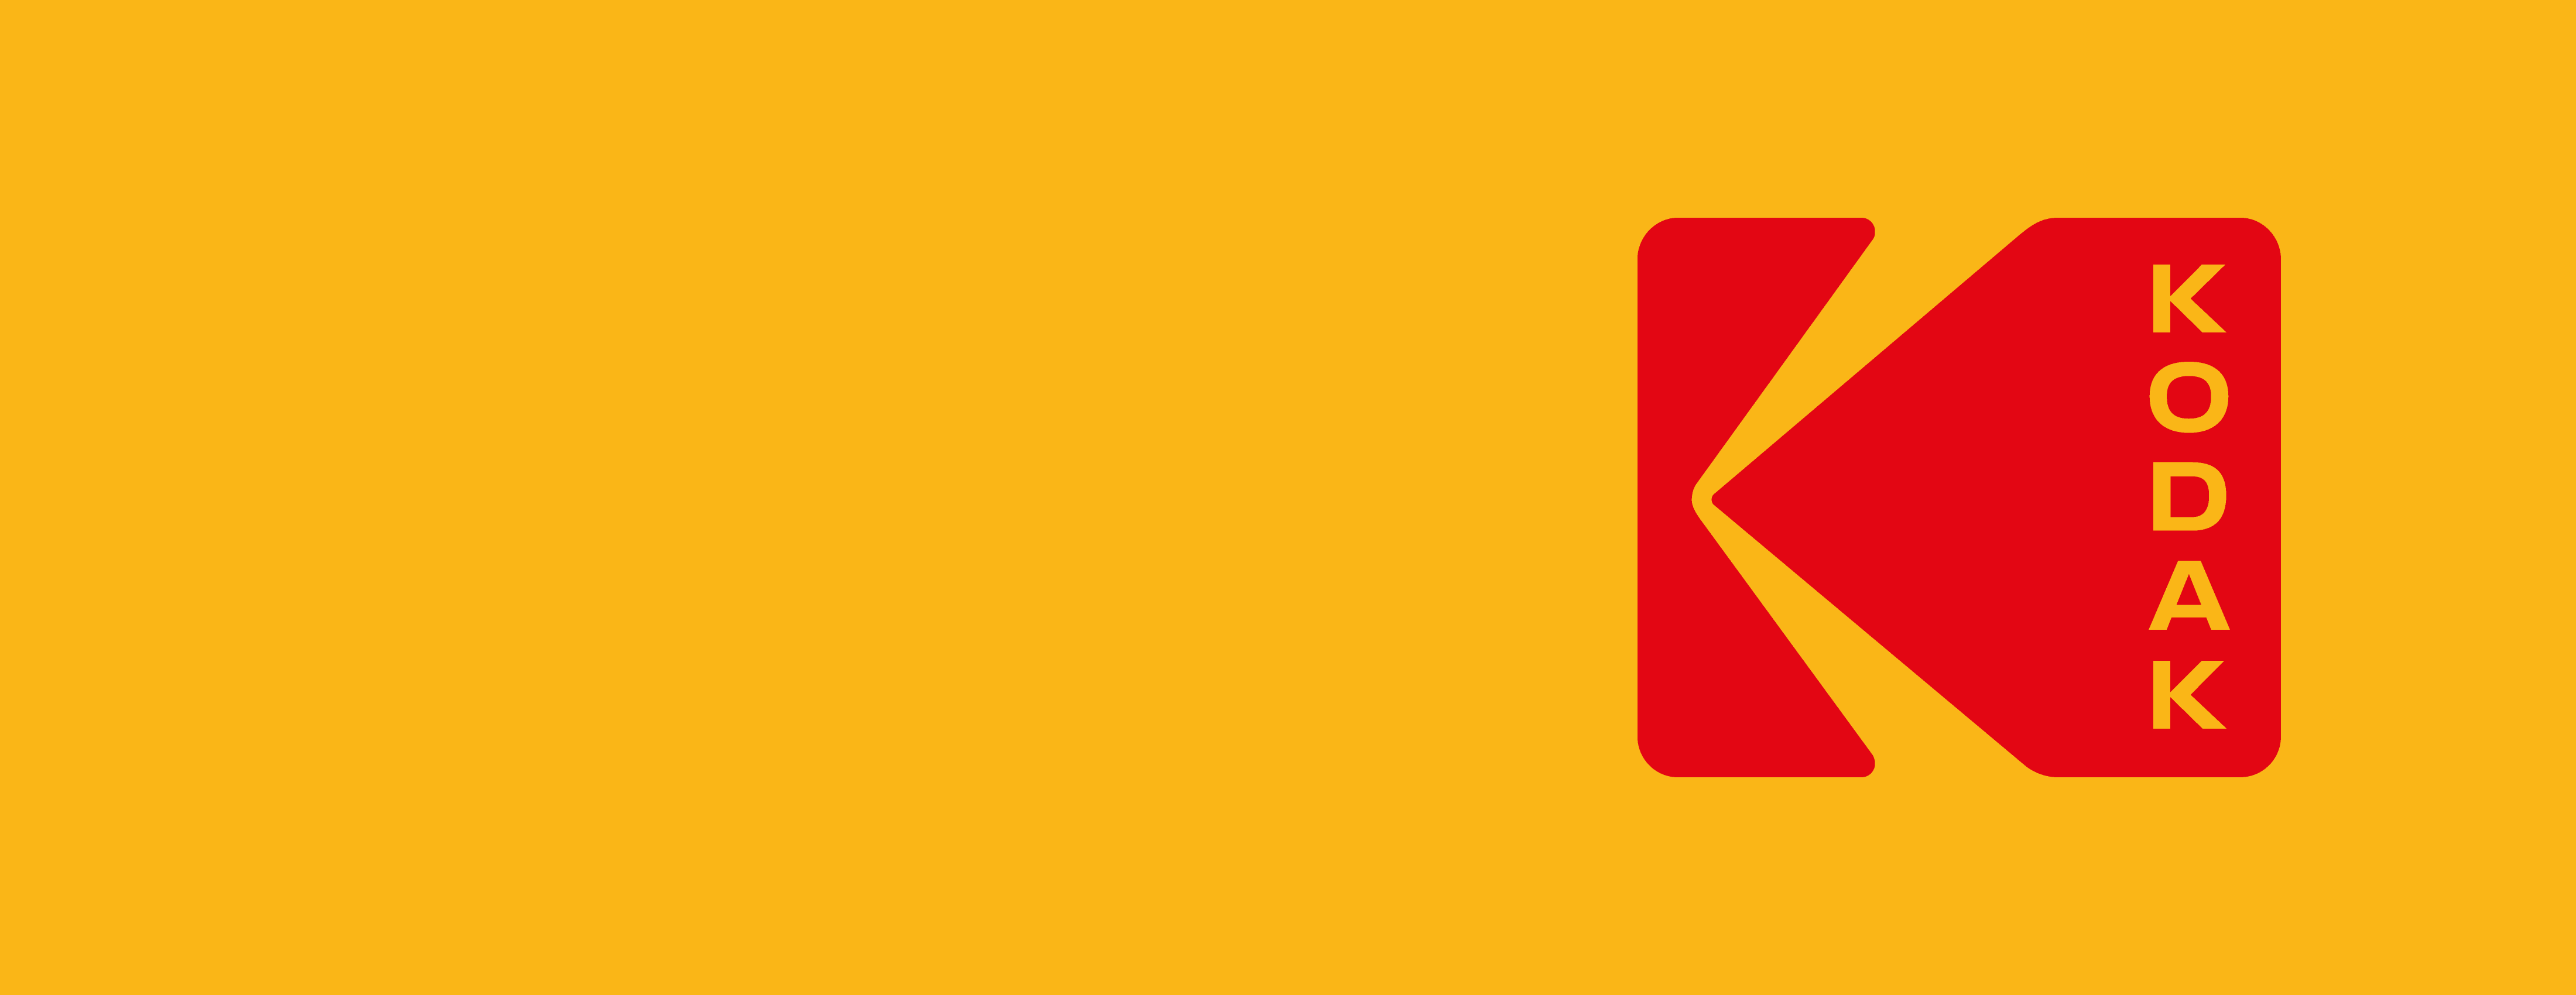 Kodak's new logo. The K device was created by Peter J. Oestreich in 1971. New York studio Work + Order has updated the design to include the brand name, arranged vertically in sans serif lettering